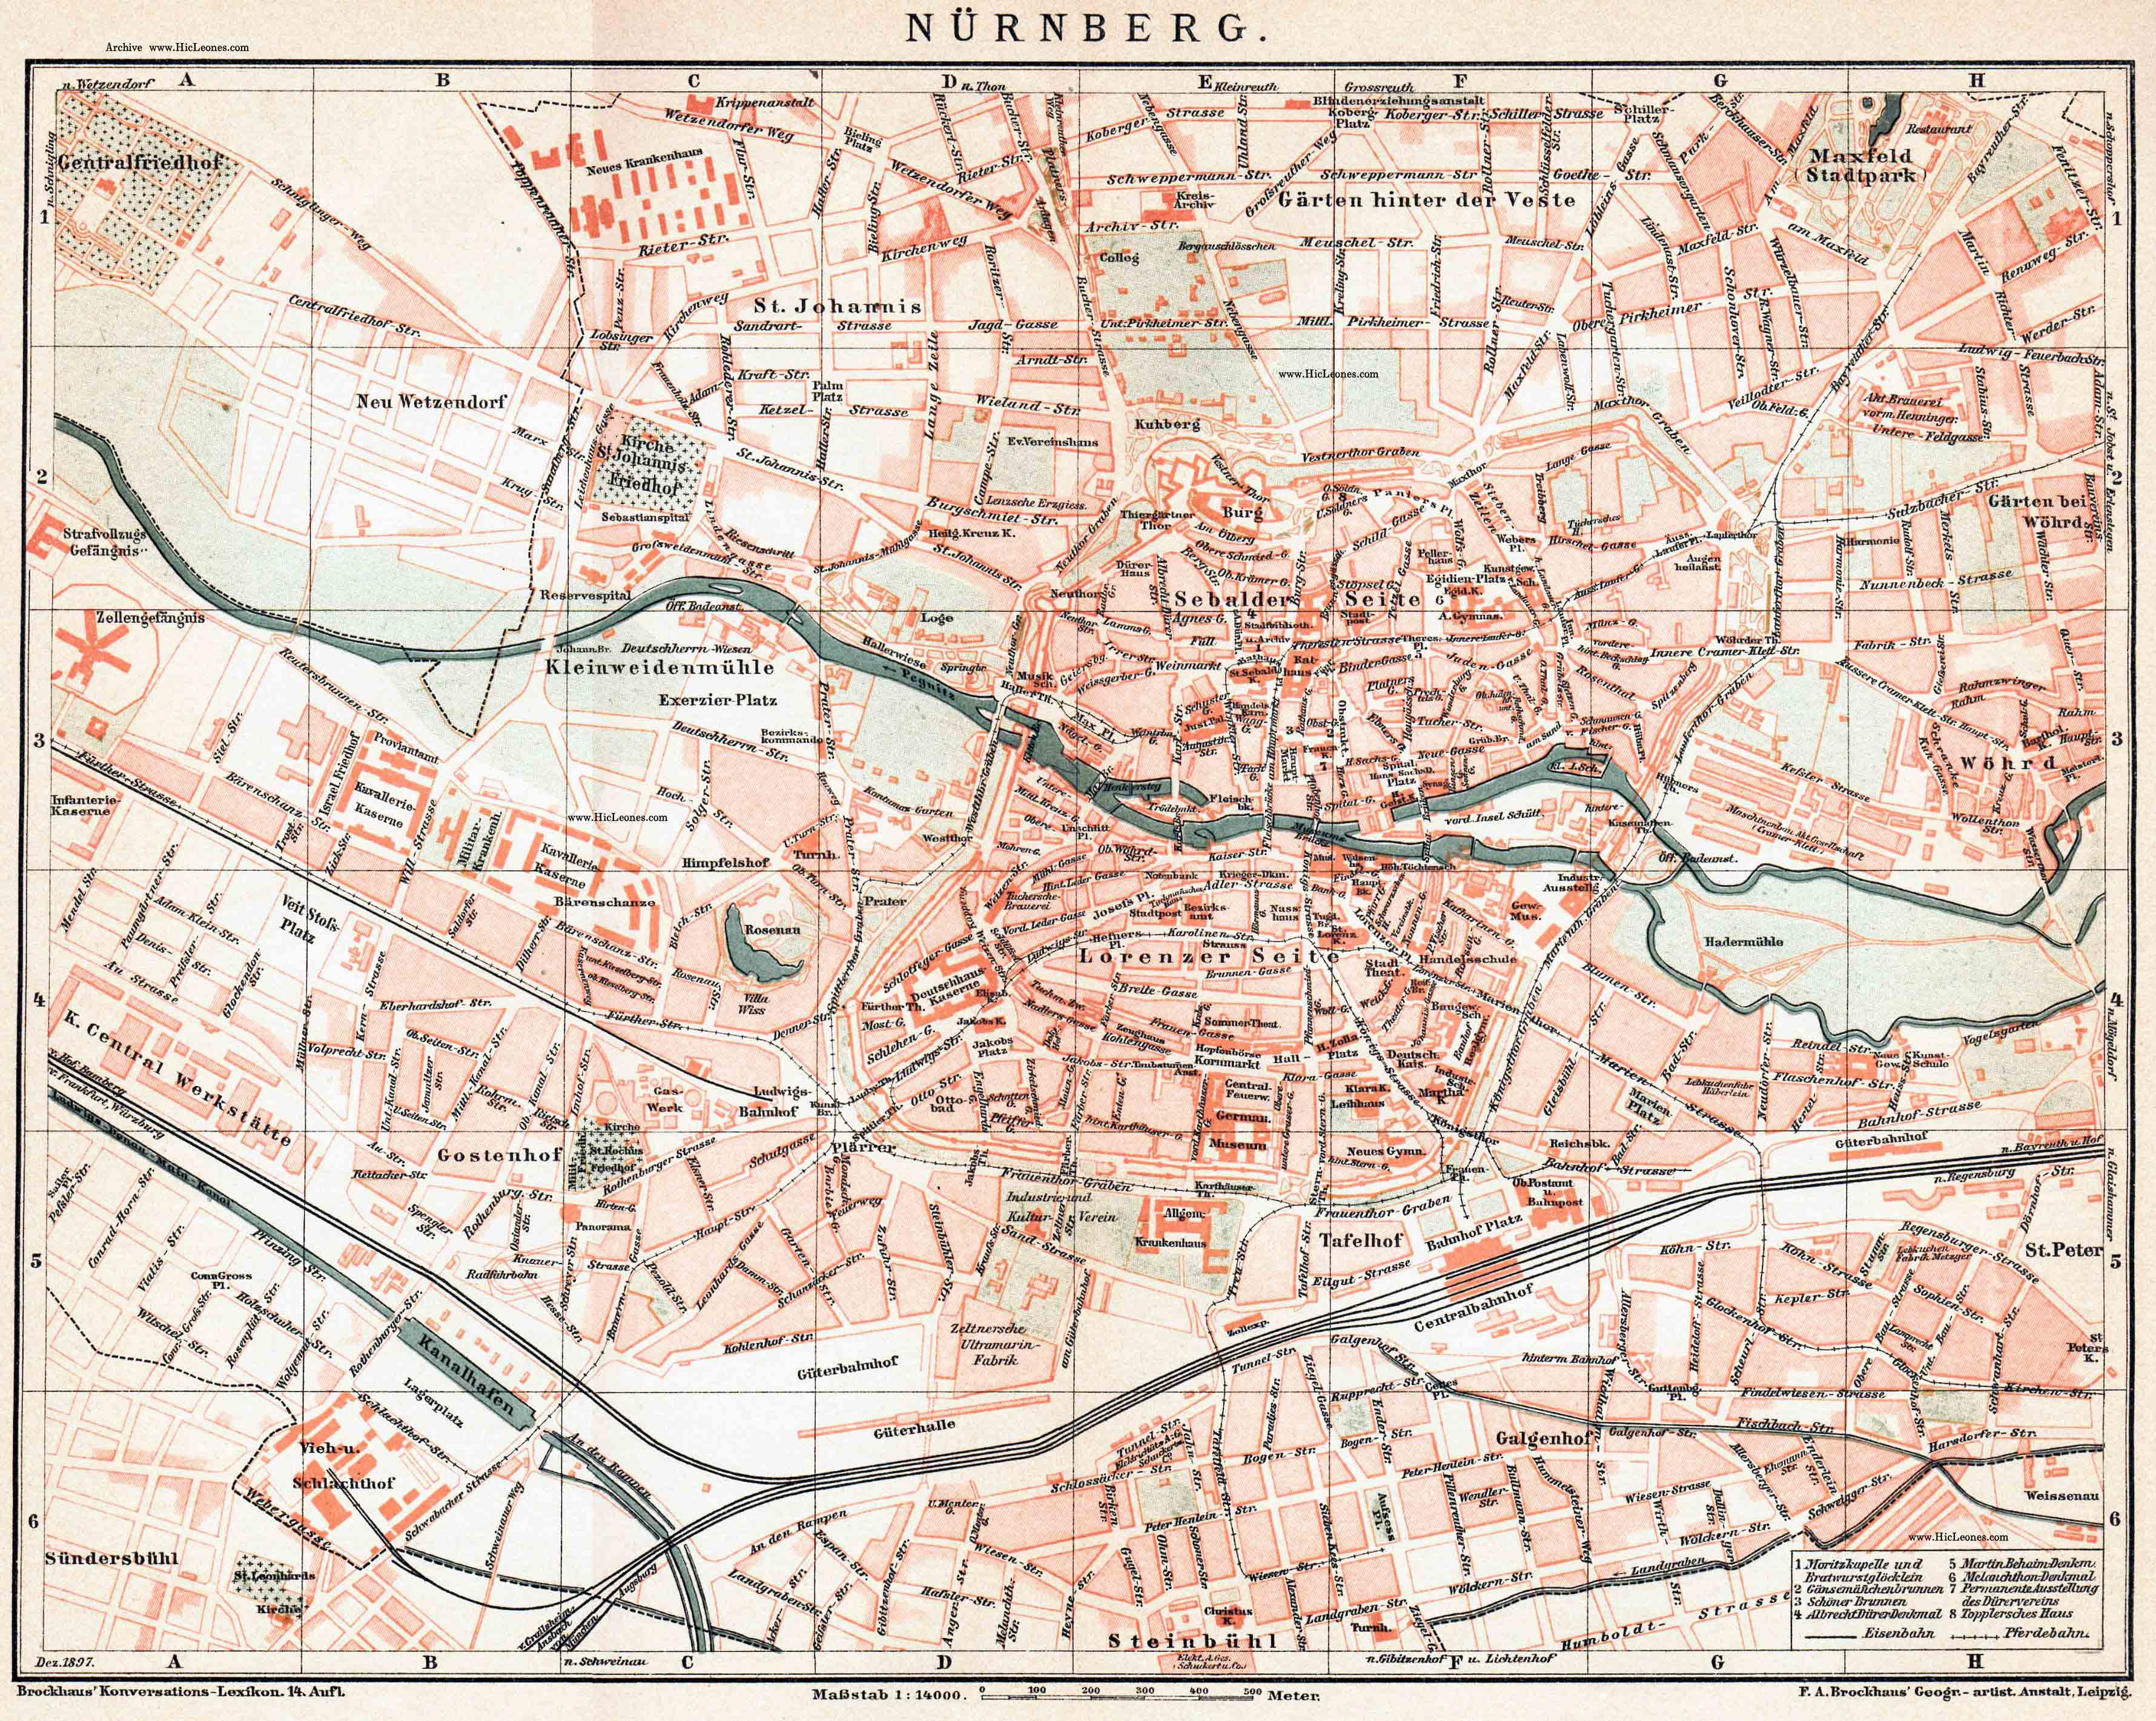 another nuremberg map in the public domain royalty free